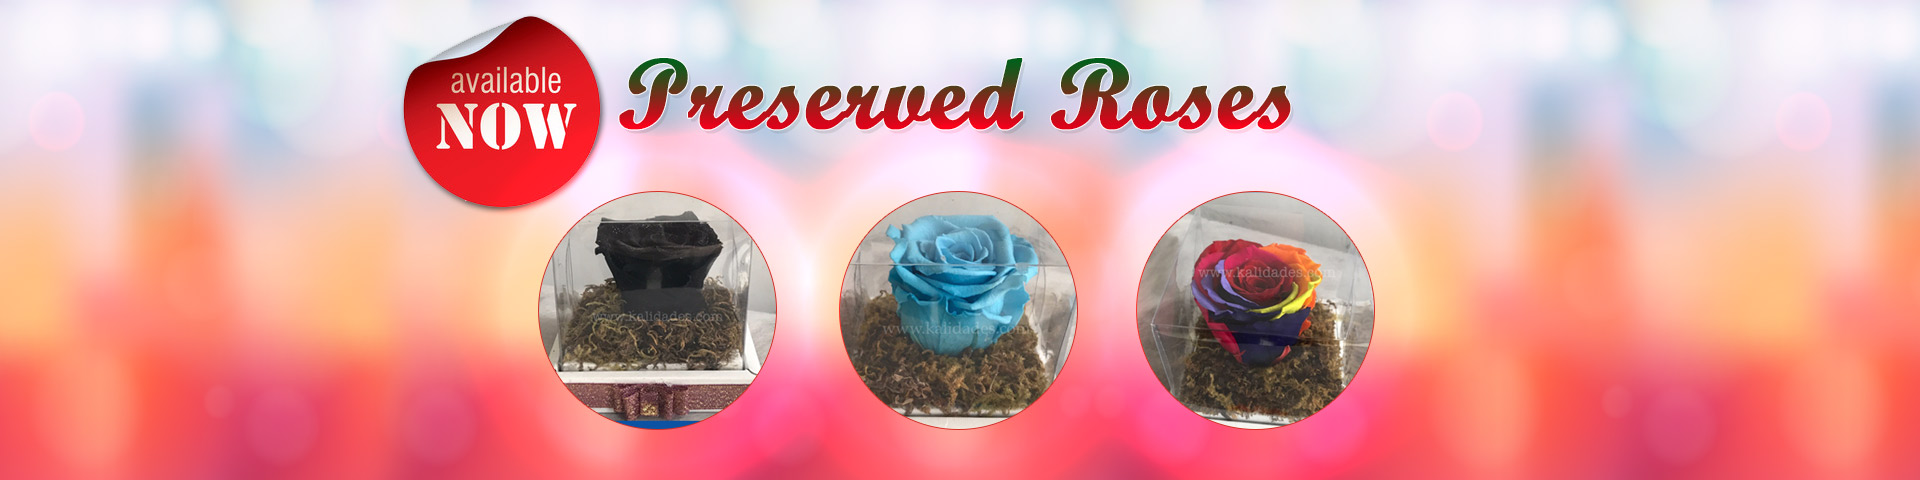 preserved_roses-1